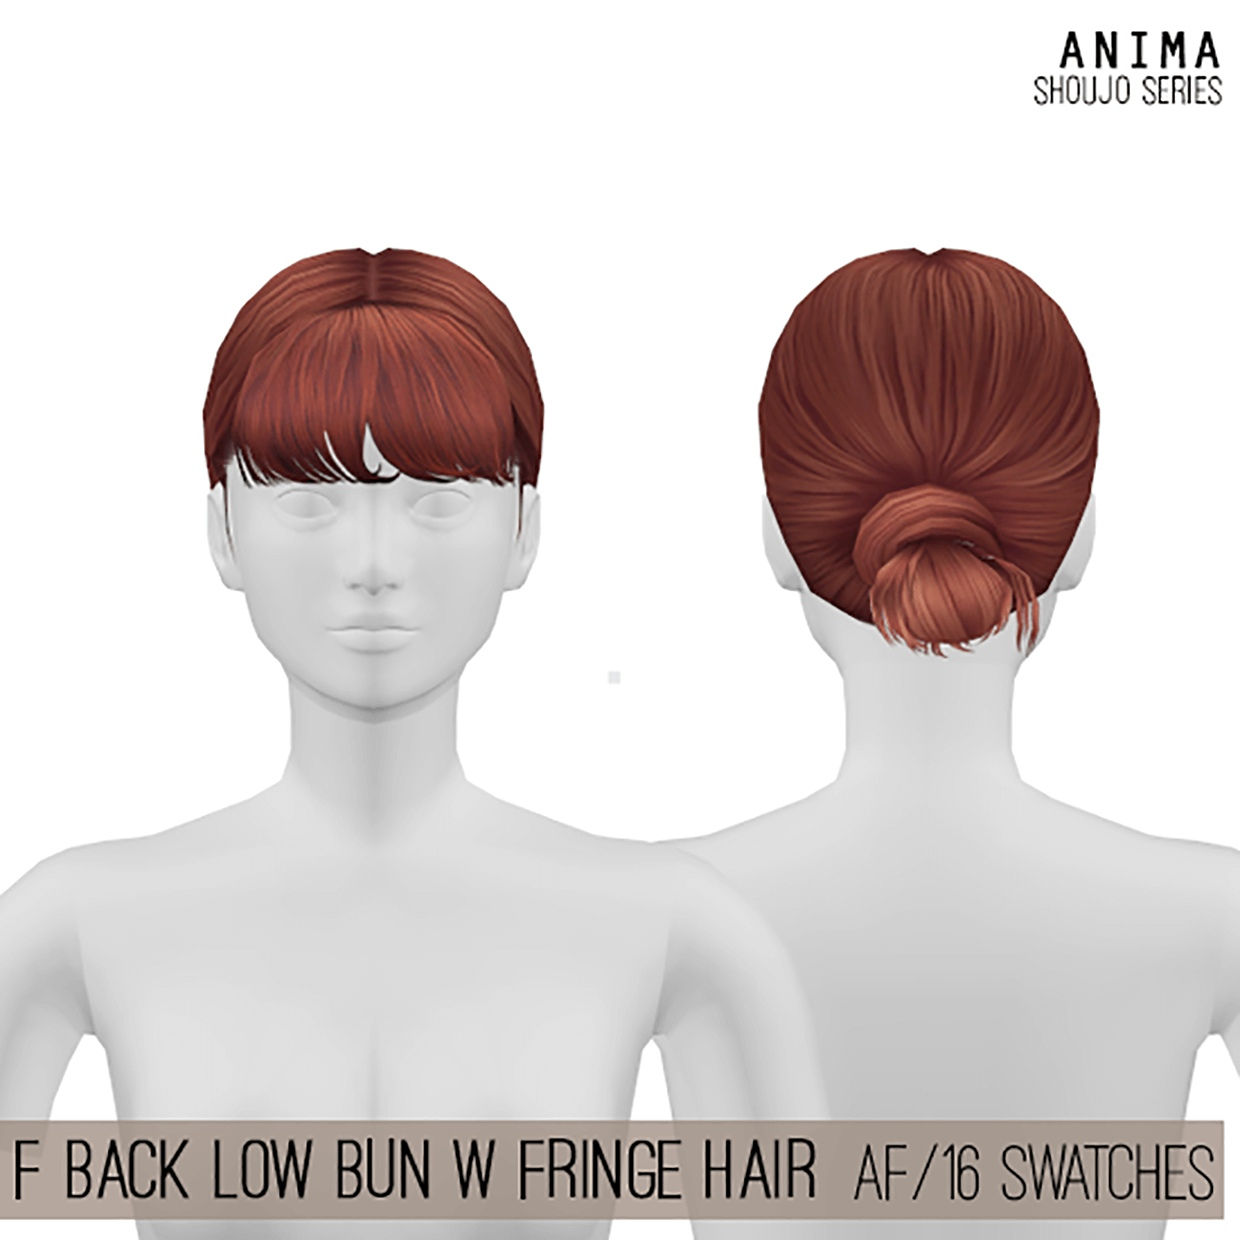 Back Low Bun w Fringe Hair by Cosplay Simmer